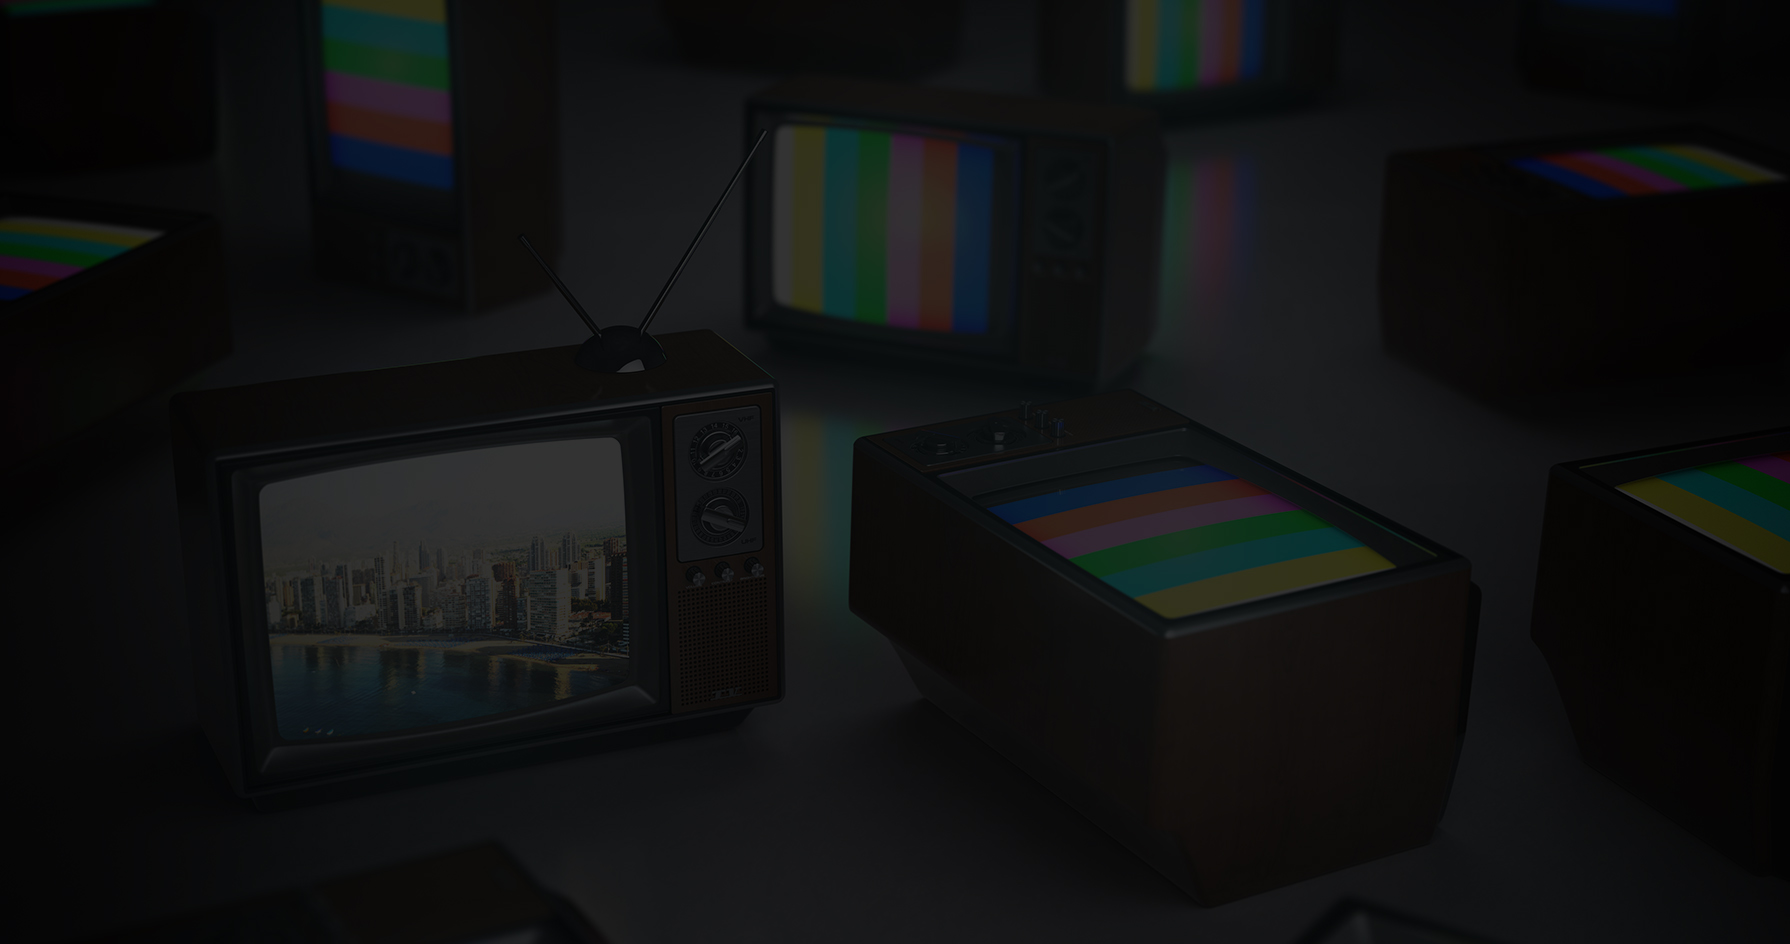 TVs with Test Signal and CGI Image on